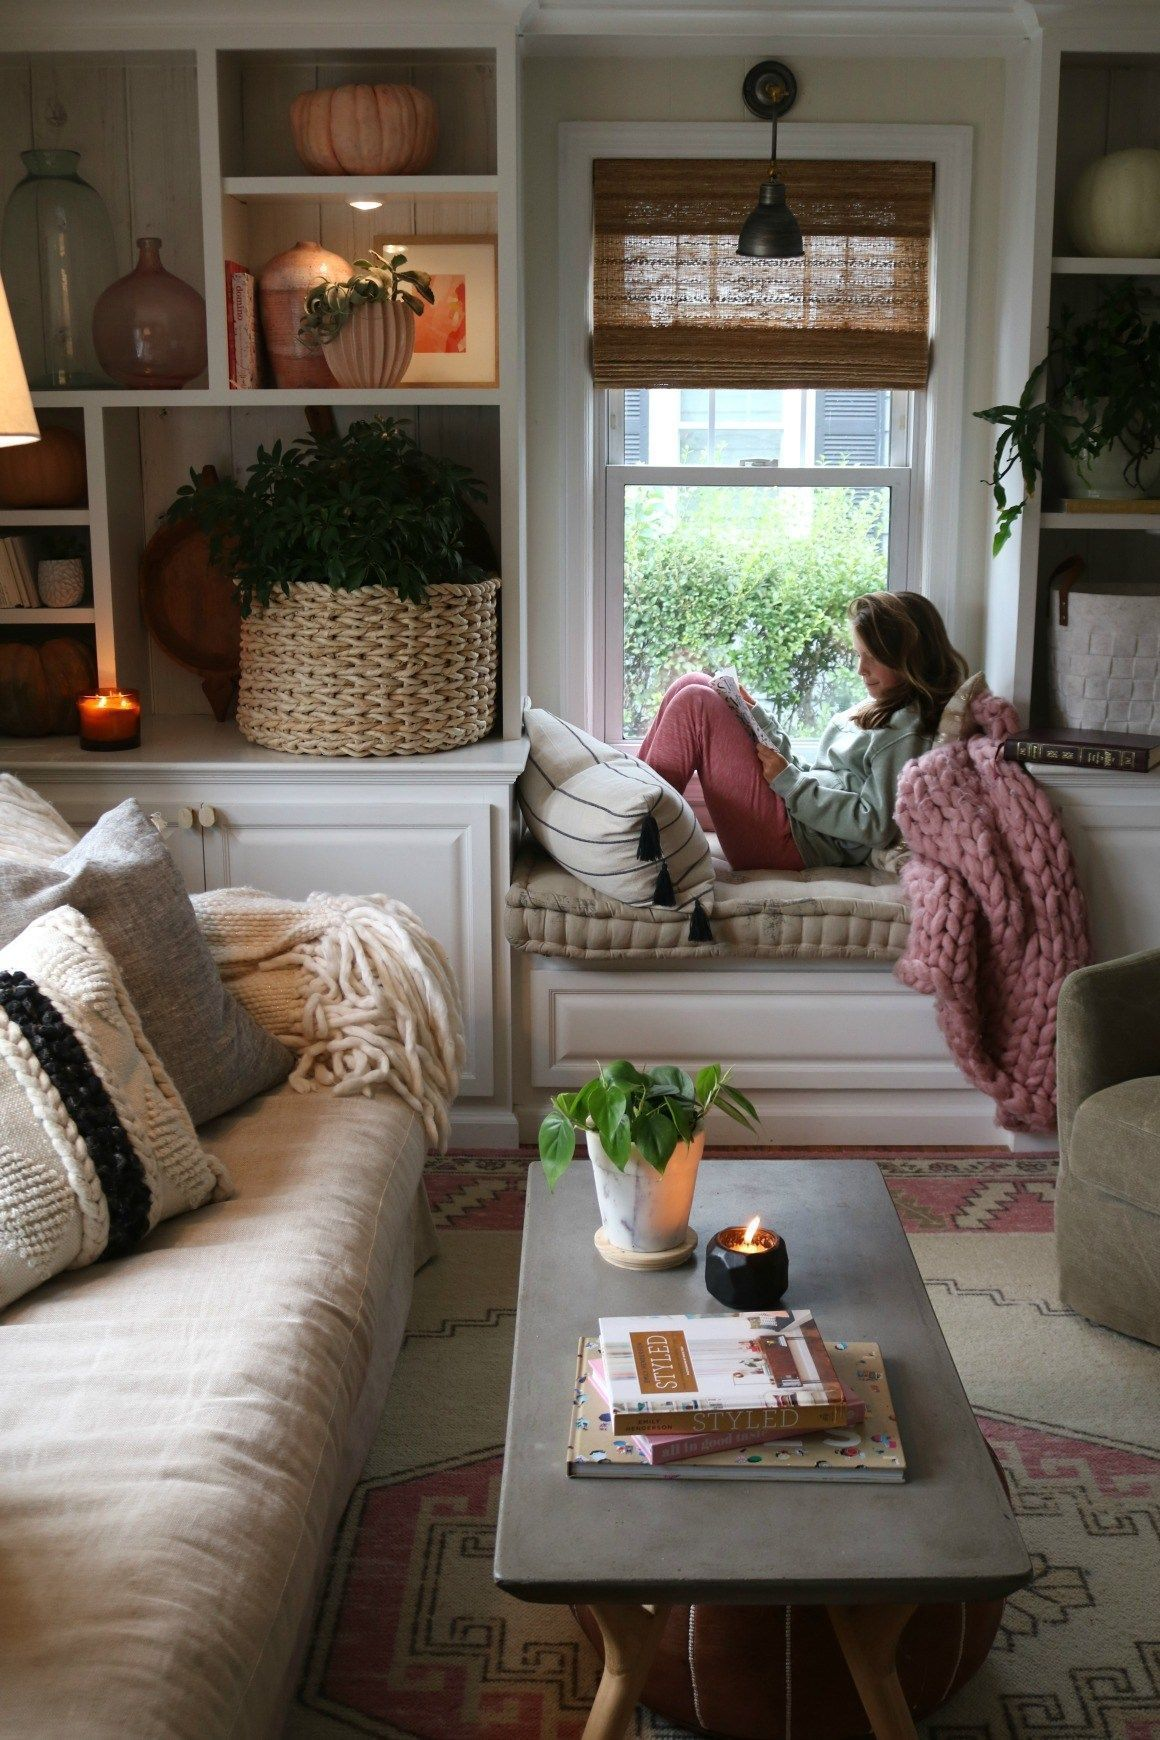 Light decoration ideas in the living room mainly fly tips for styling -  Light decoration ideas in the living room mainly fly tips for styling #all #decorative ideas #fall  - #cutehomedecorations #decoration #diyHousedesign #Fly #Housestyles #ideas #light #Living #room #styling #Tips